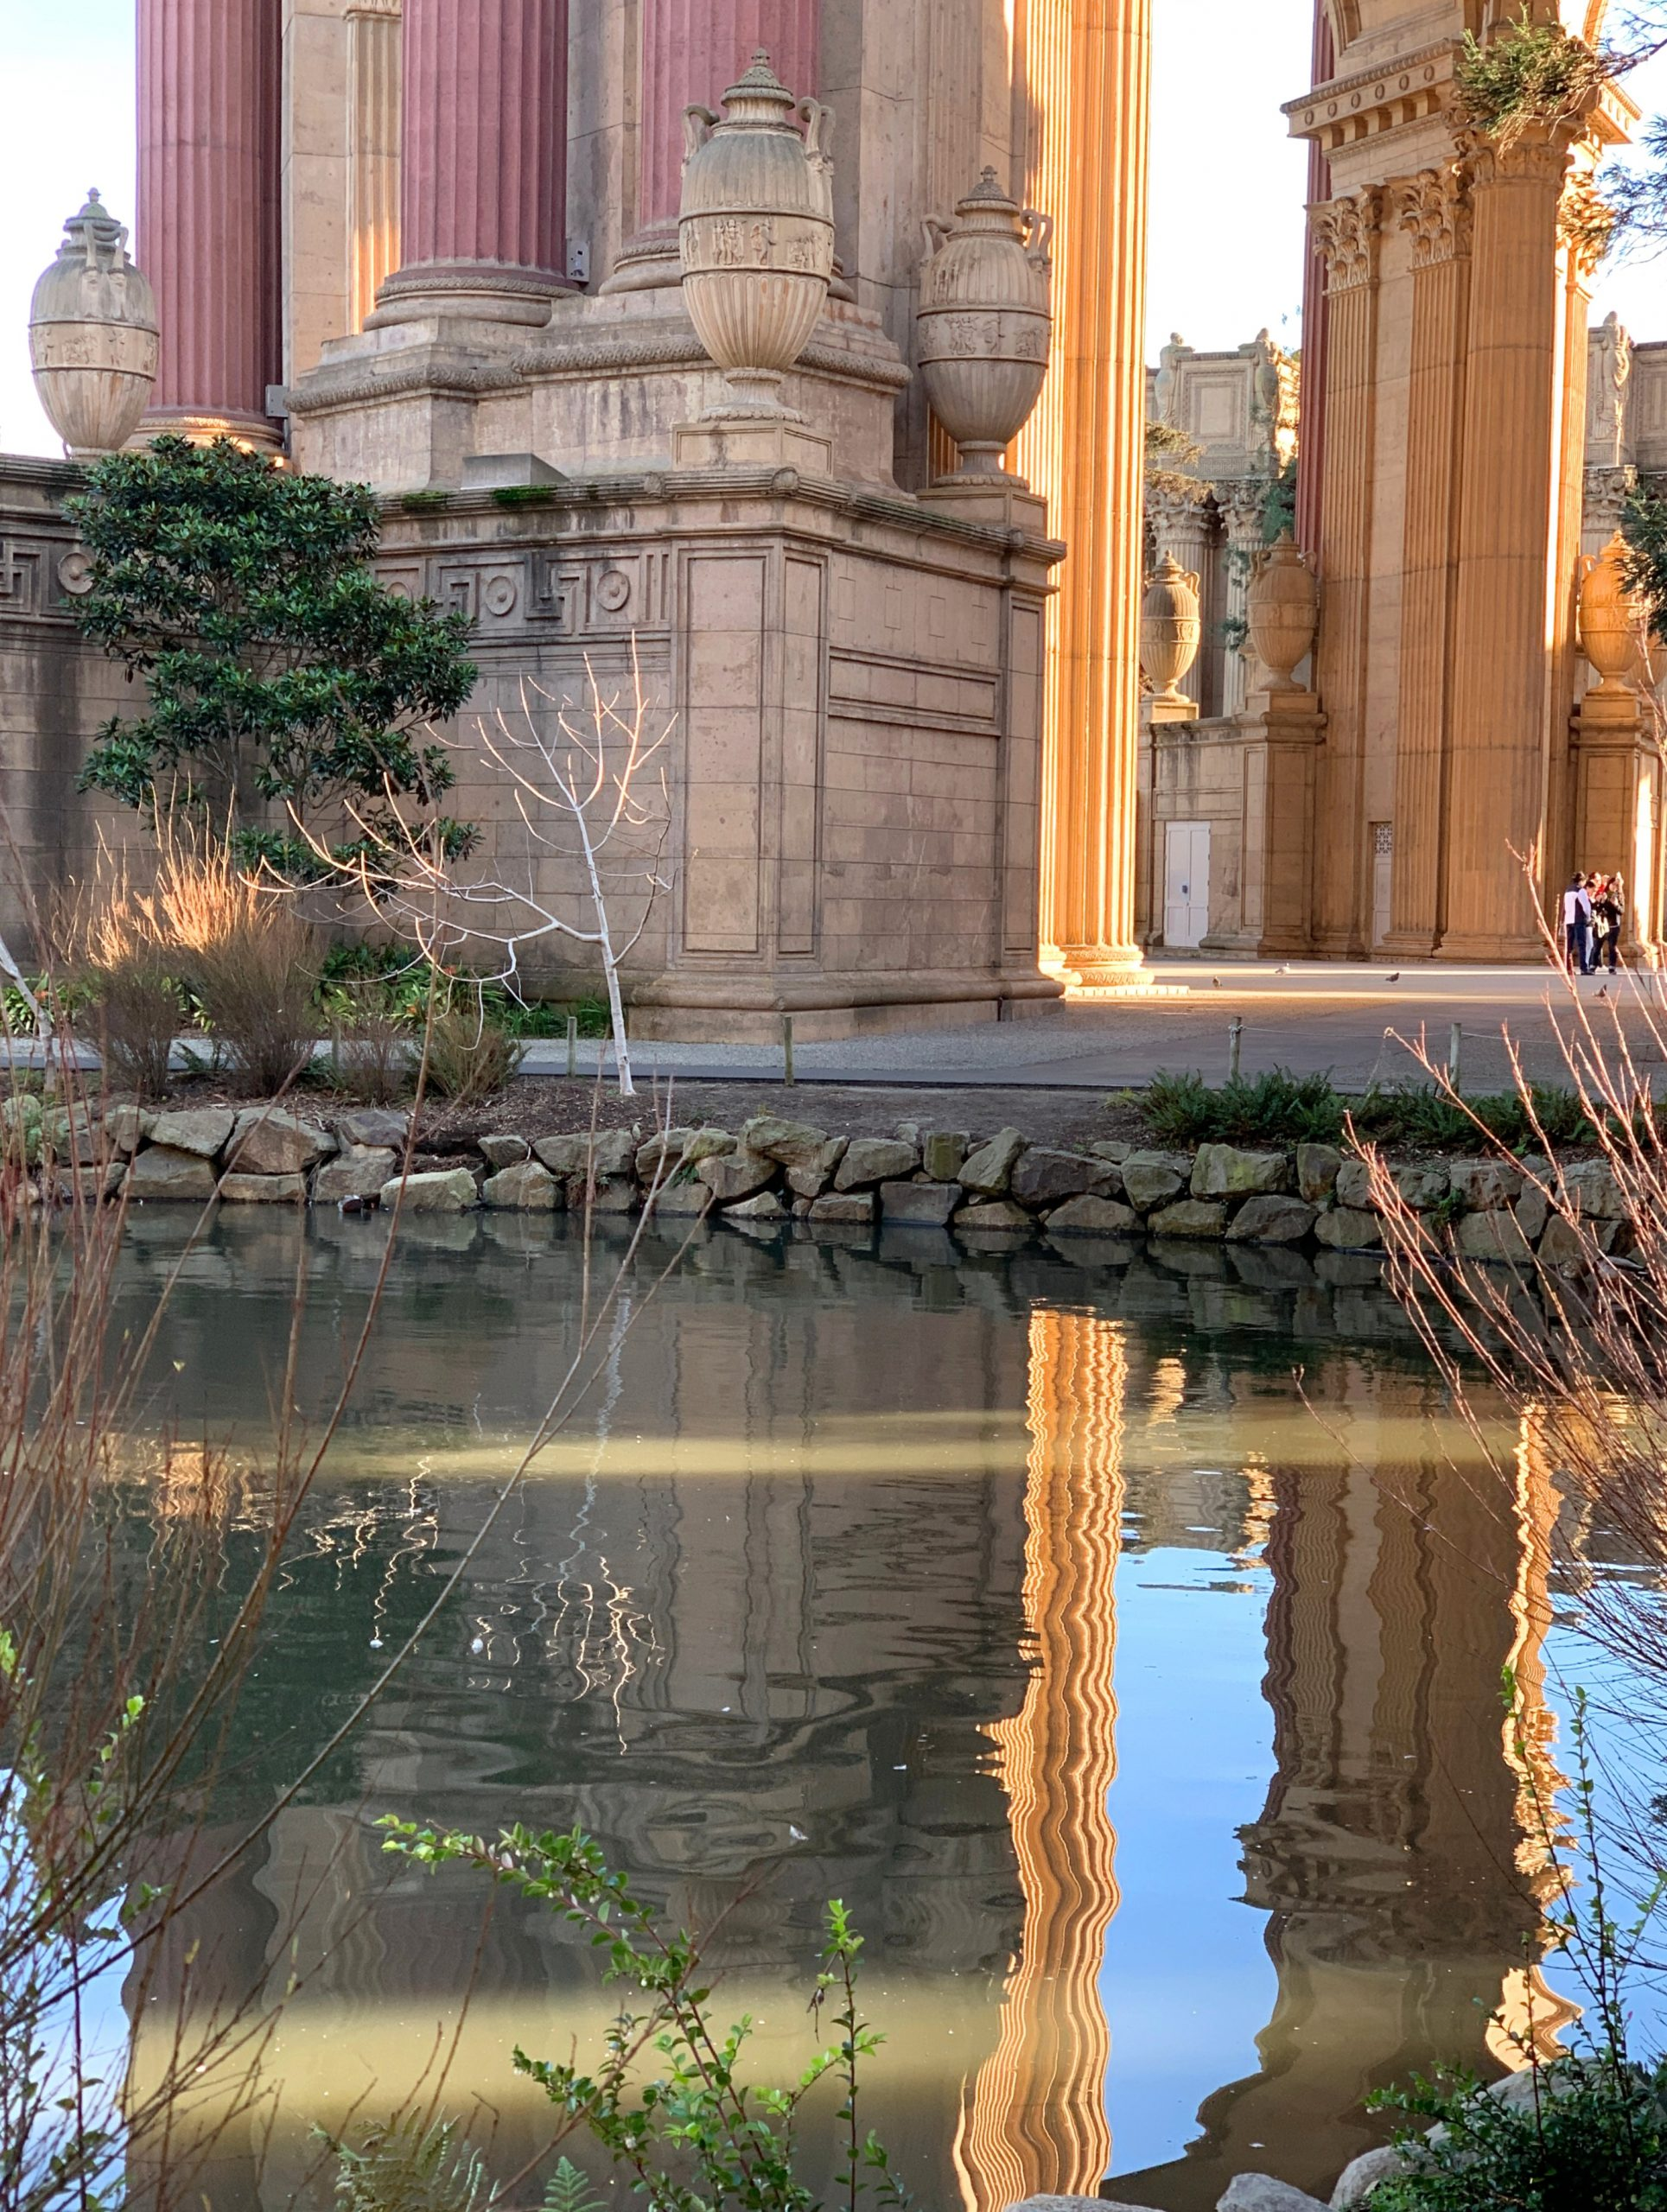 Visitar o Palace of Fine Arts - Hotel California Blog